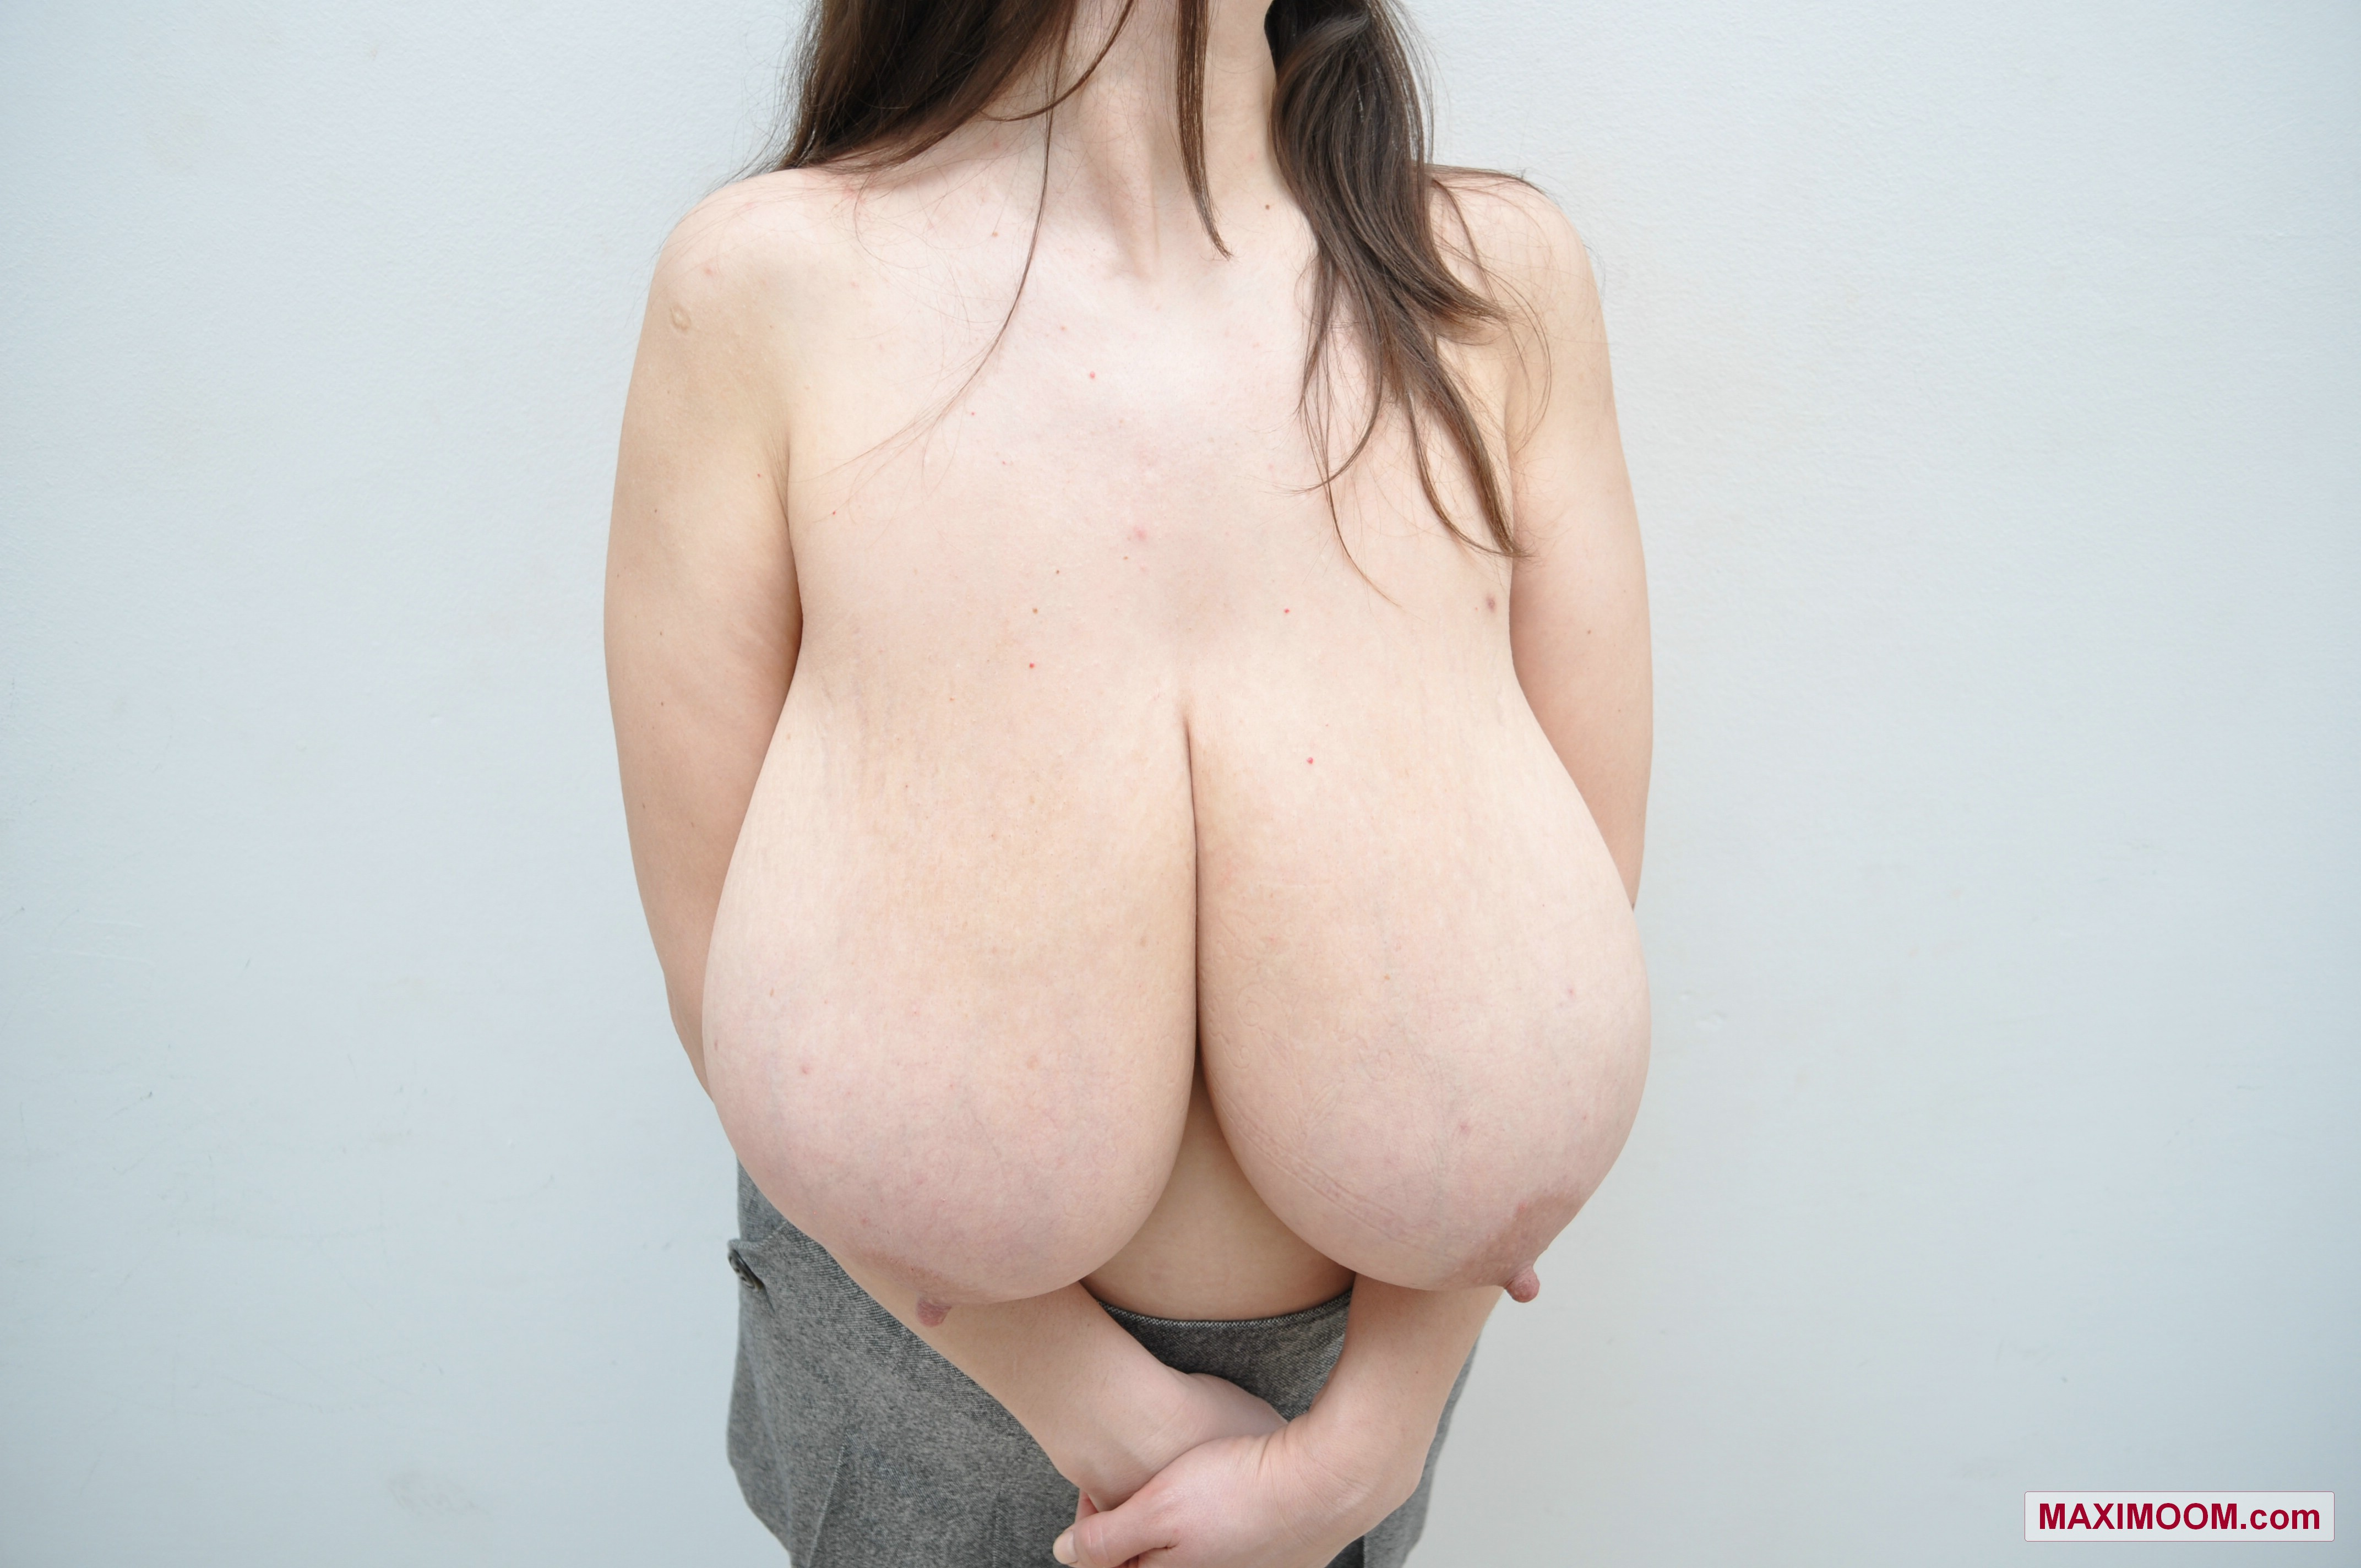 Teen Milla W With Skinny Body But Huge Boobs Russian Sexy Girls